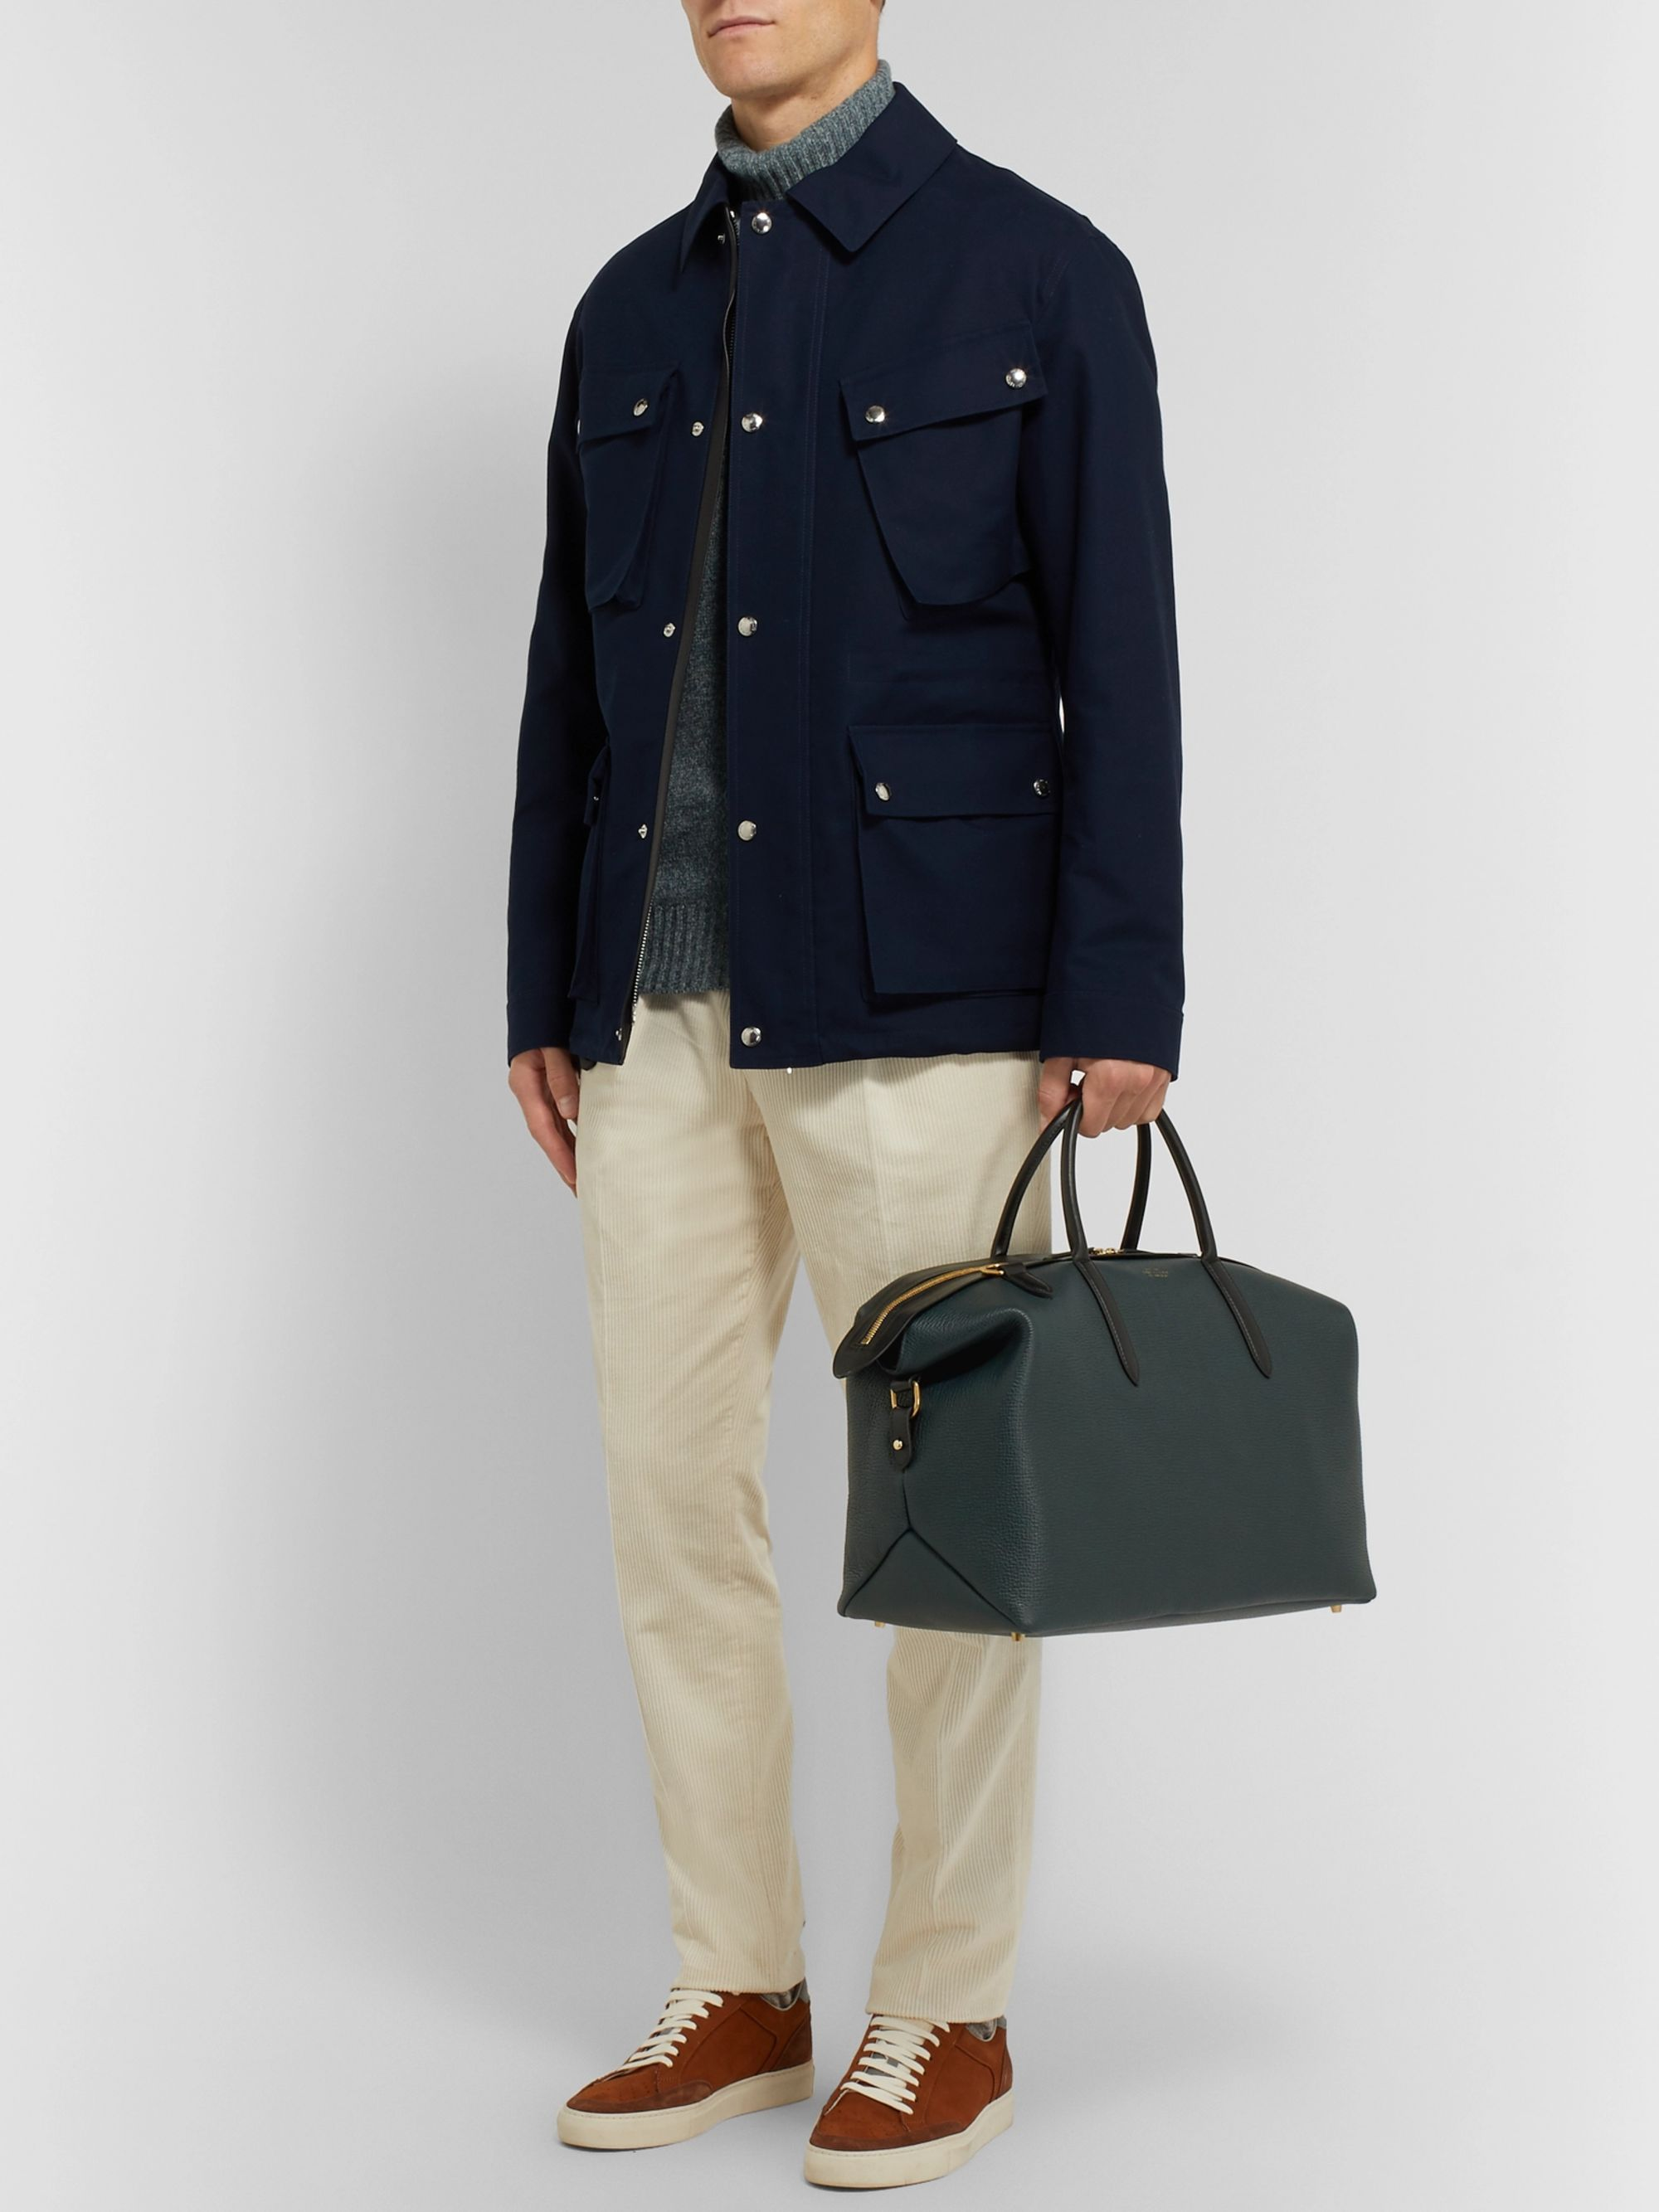 Smythson Full-Grain Leather Holdall